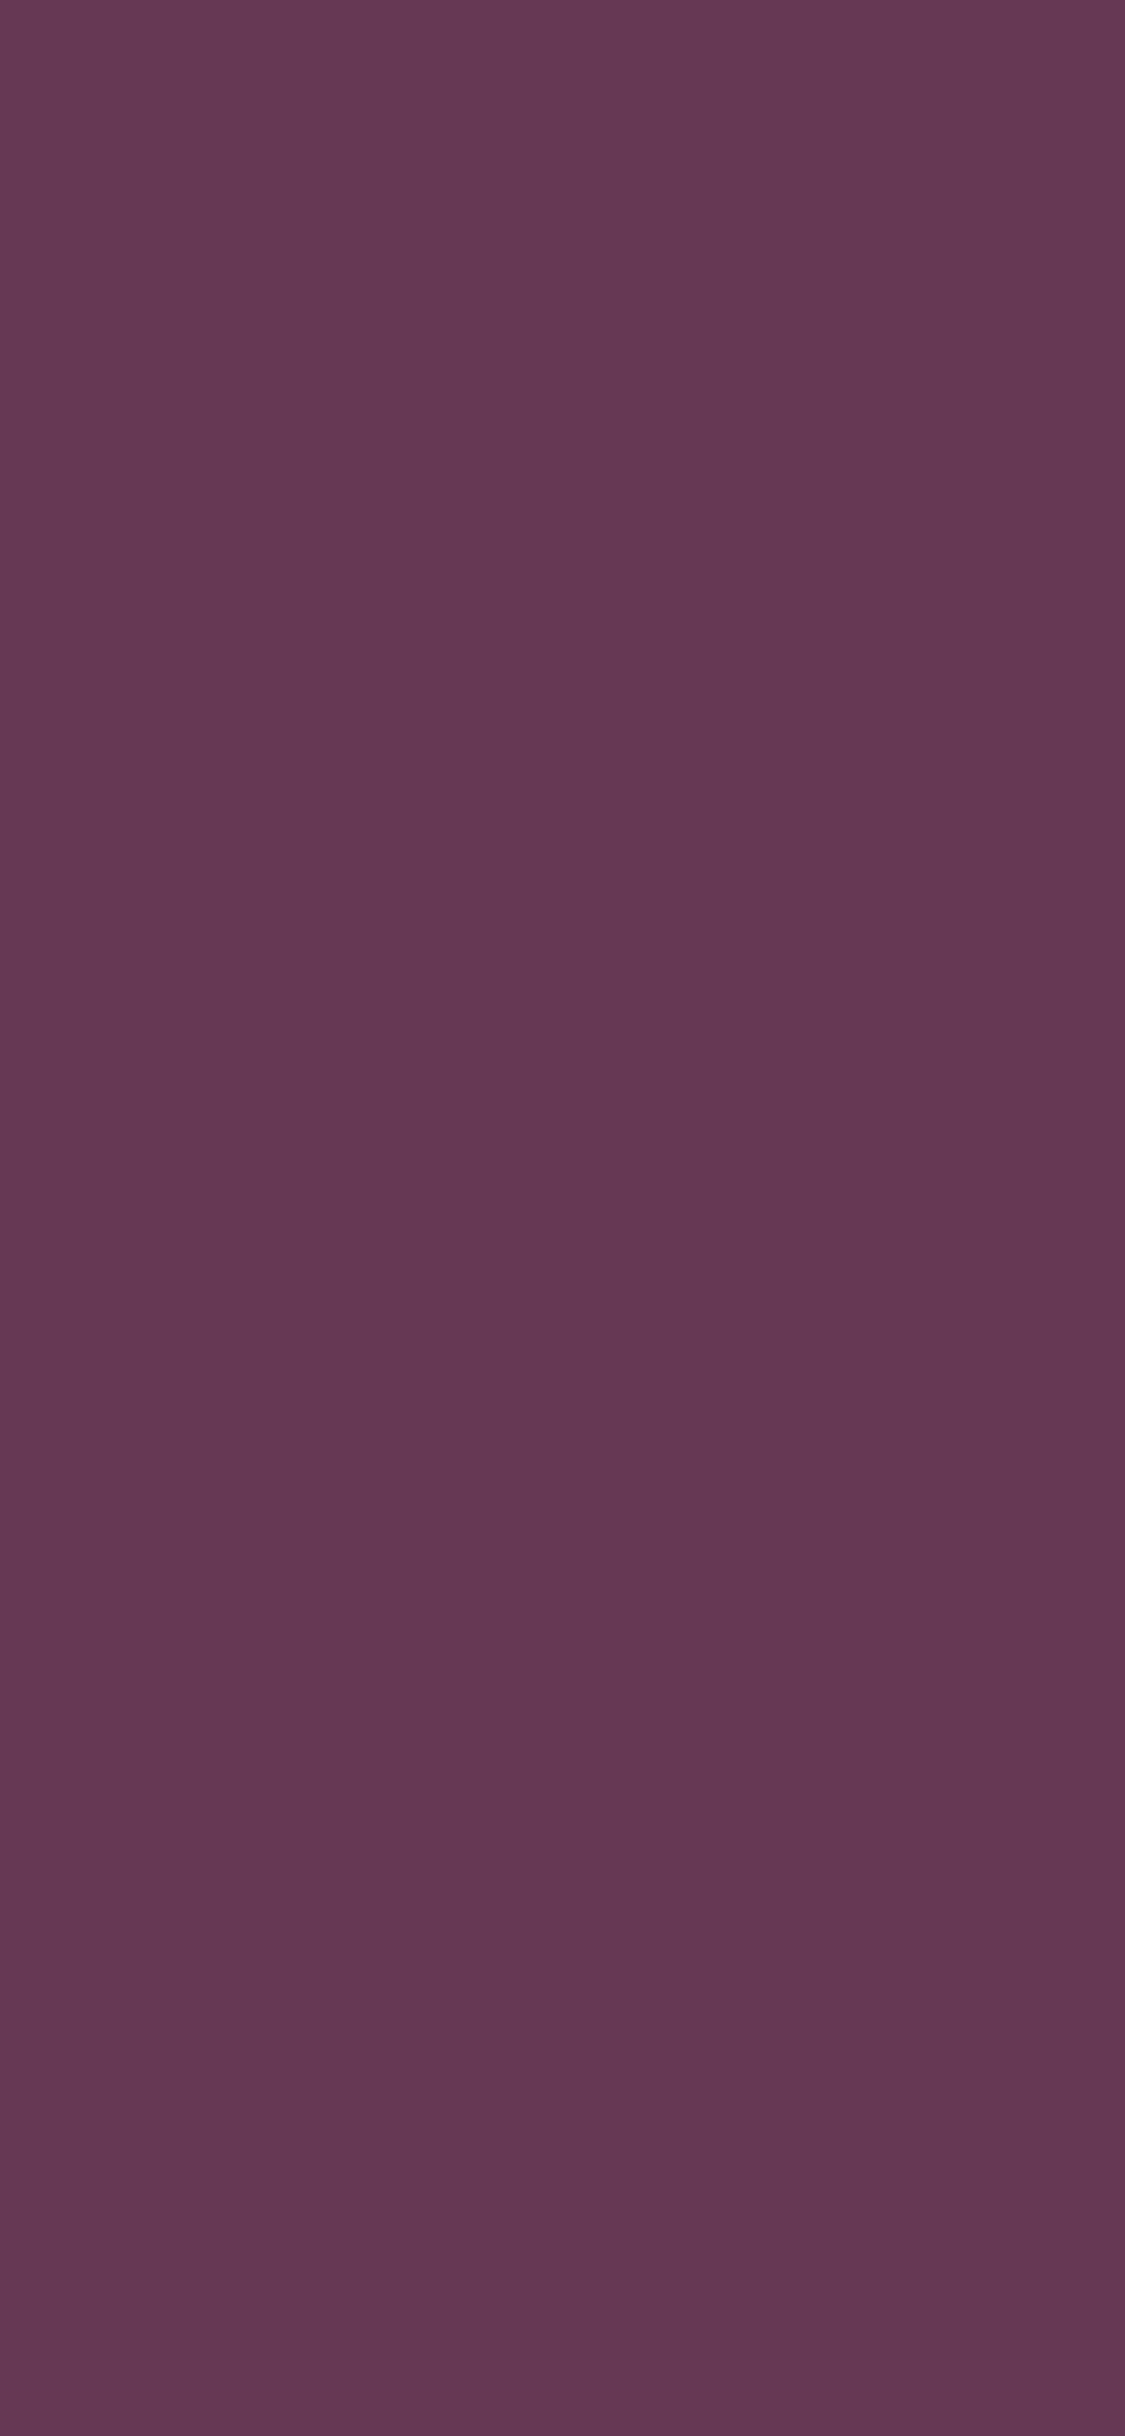 1125x2436 Halaya Ube Solid Color Background